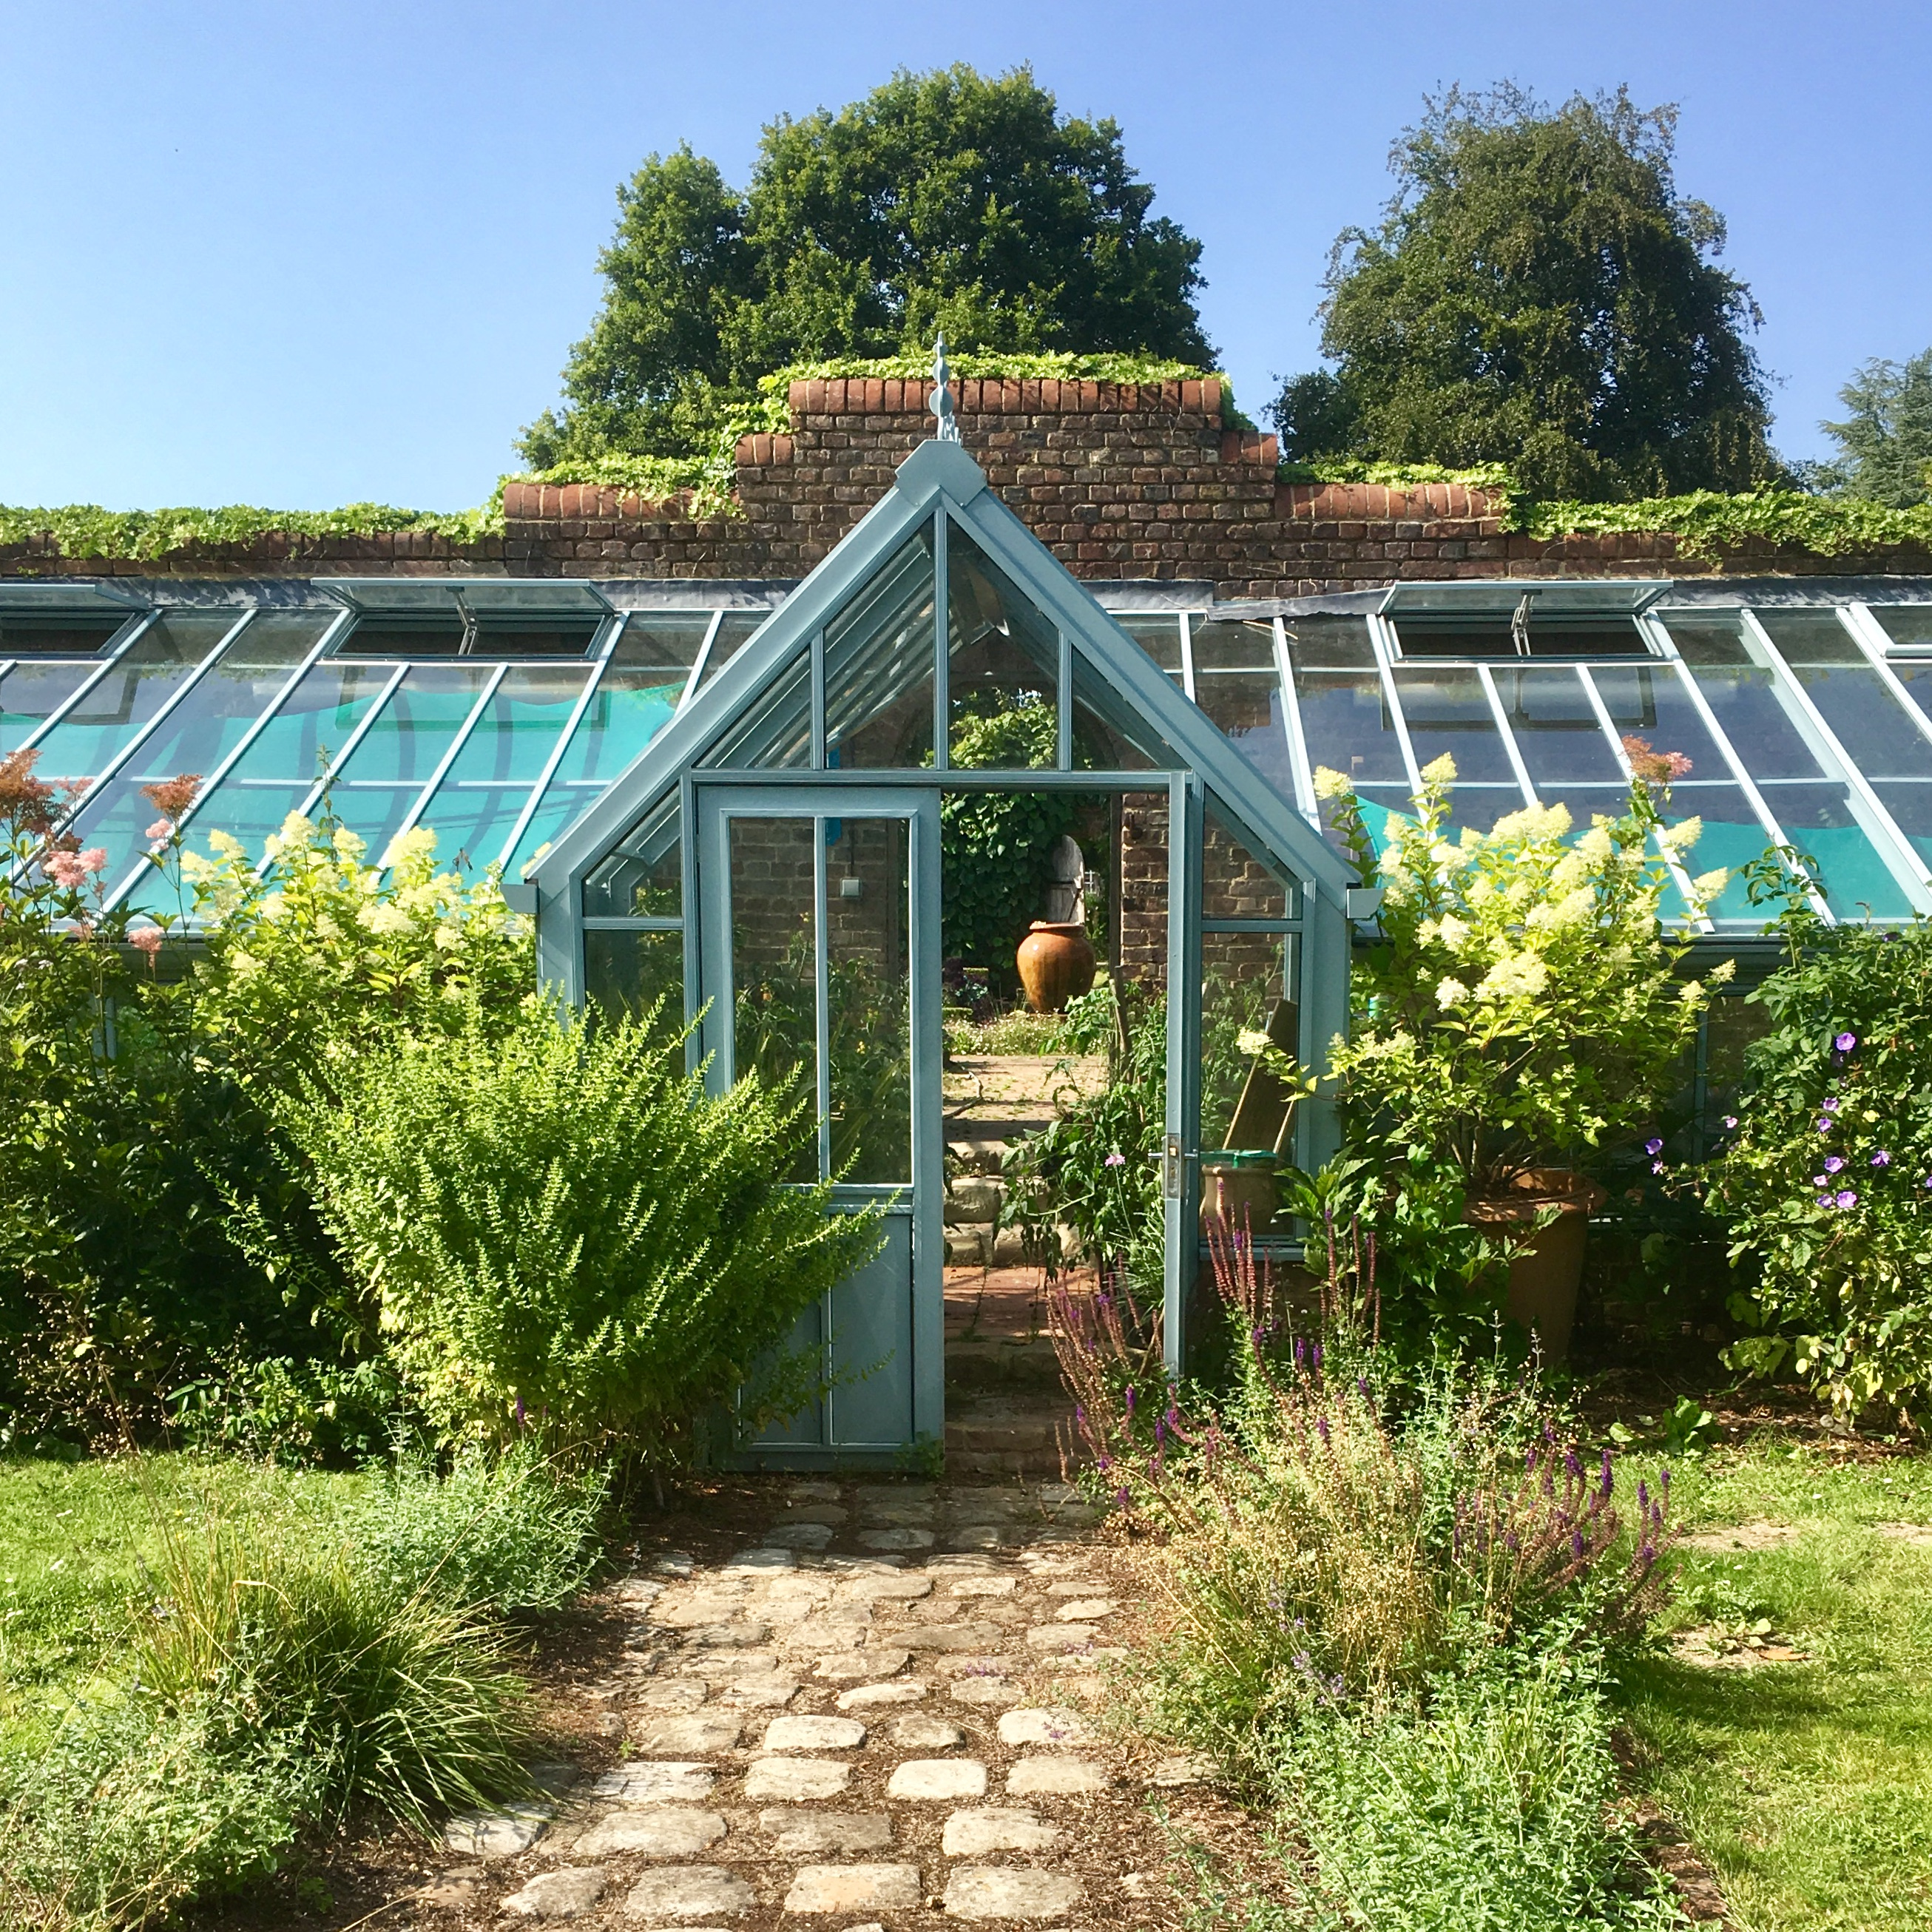 Acres Wild Traditional Terraces Glasshouse